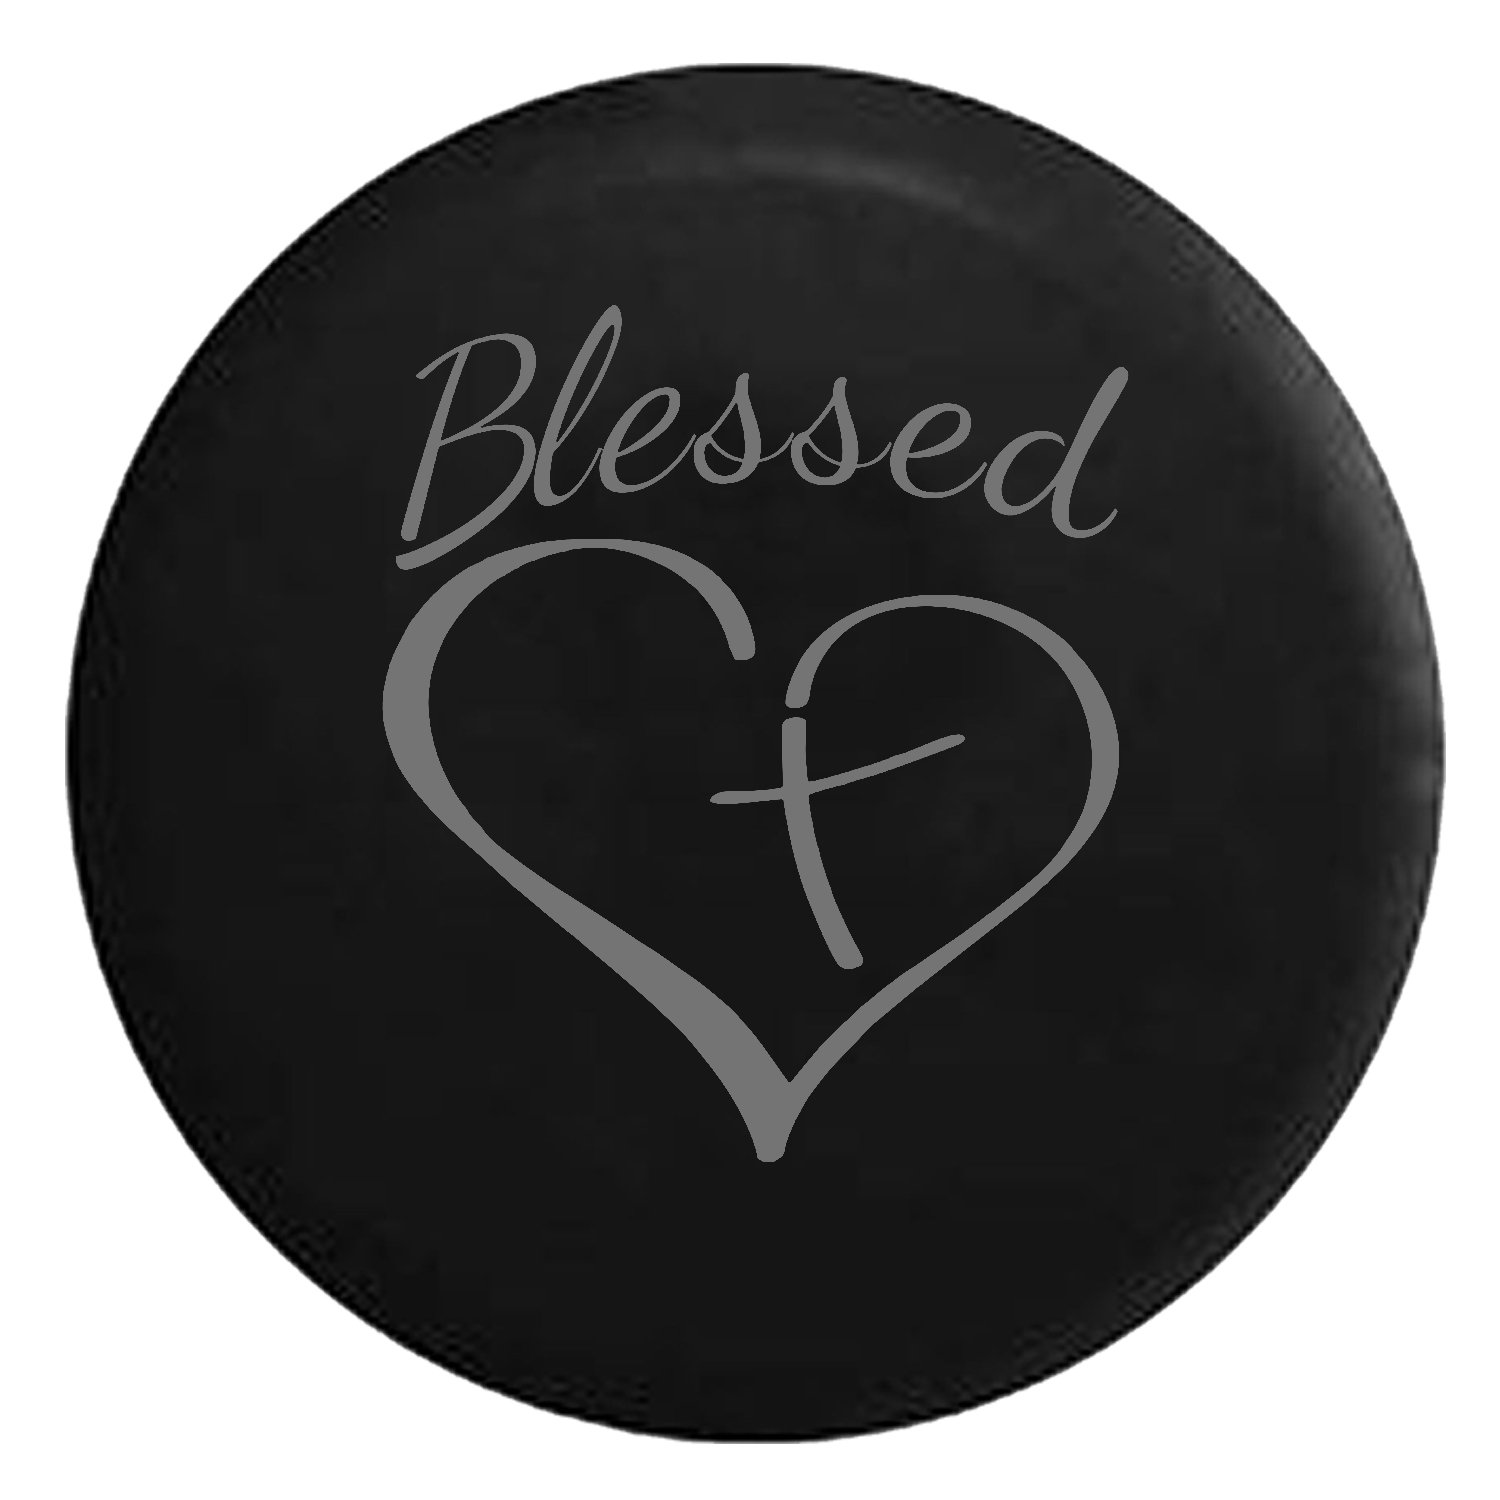 Blessed Heart with Cross Spare Jeep Wrangler Camper SUV Tire Cover Pink Ink 27.5 in